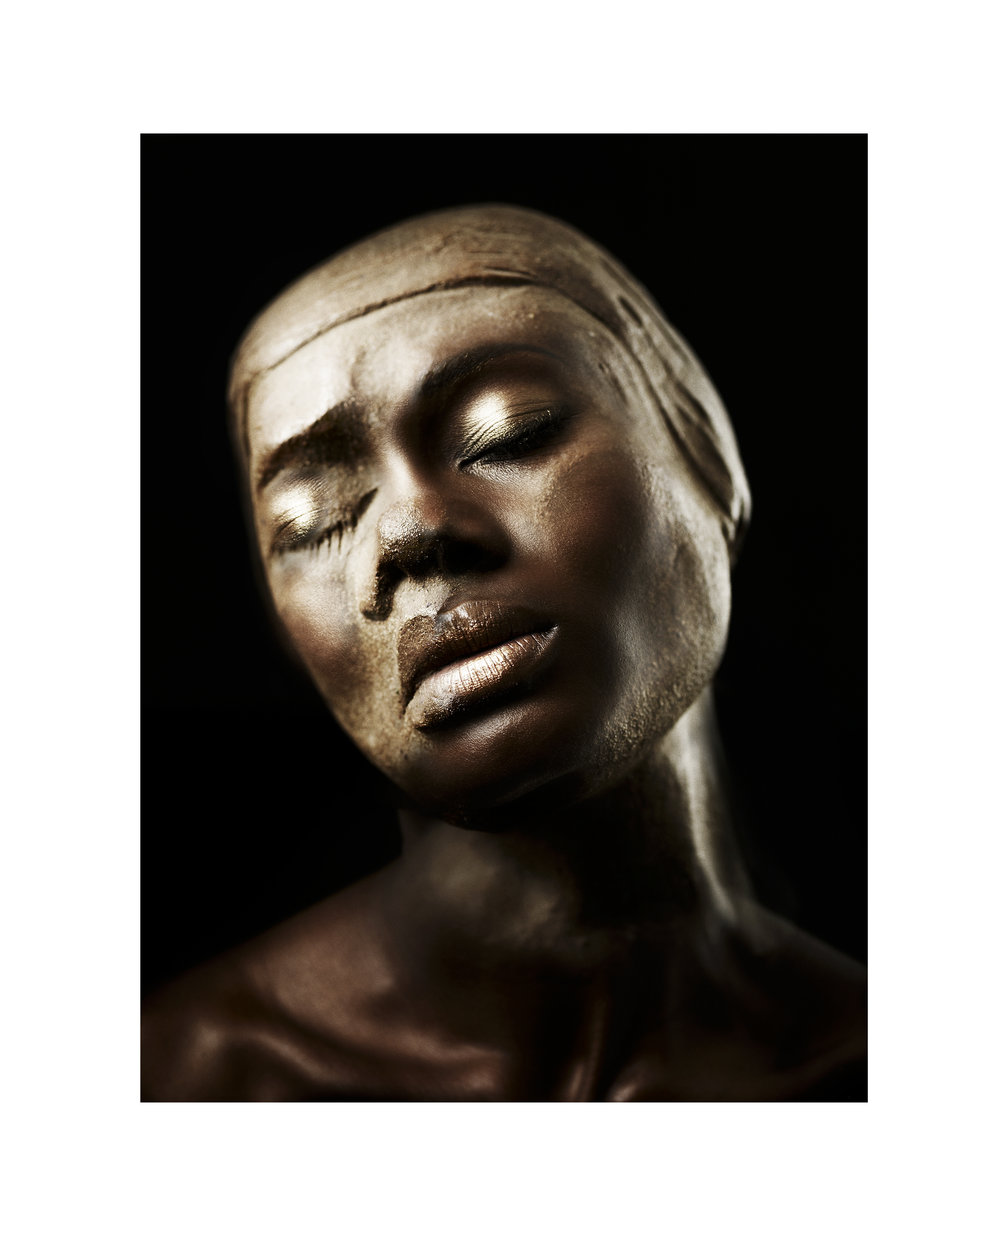 ' Majulani '   Malcolm Dare  Archival print on Hahnemuhle Photo Rag  1210 x 960 x 60 mm  R 22 500.00 excl. vat